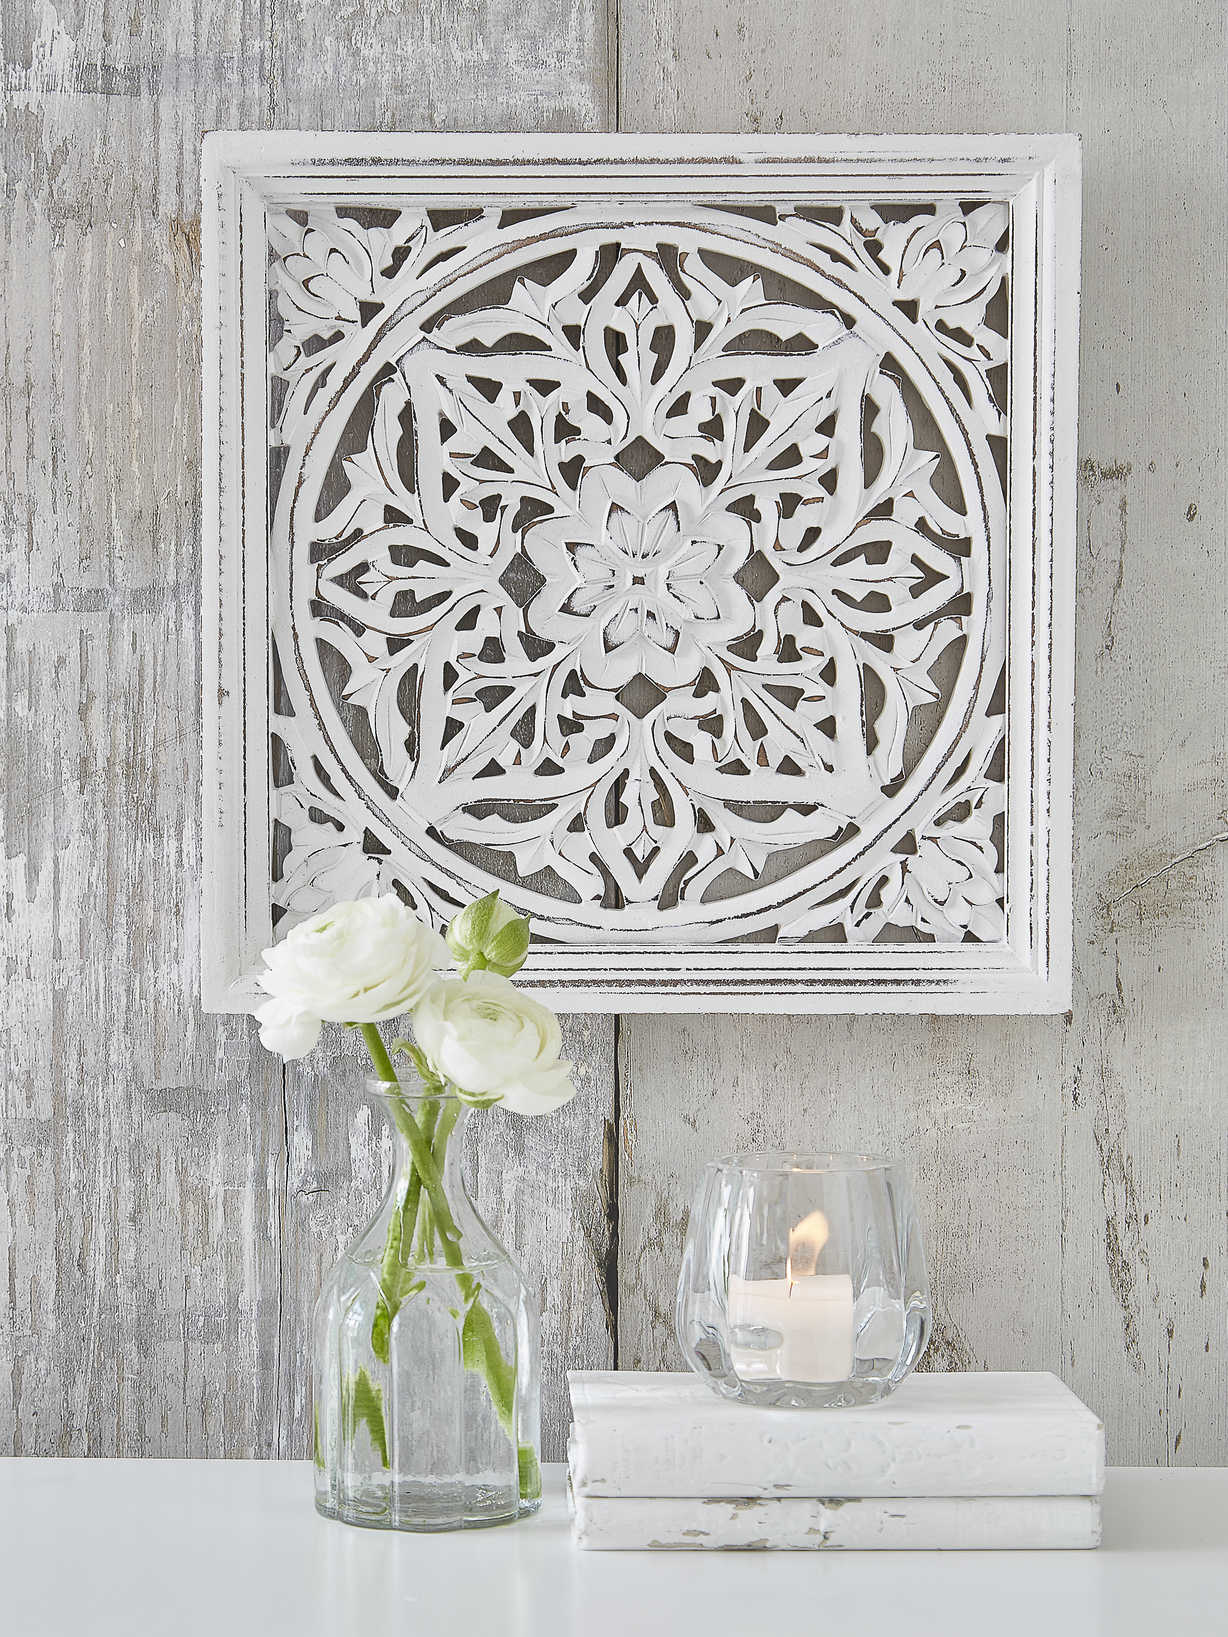 Nordic House Carved Wall Panel - Mia